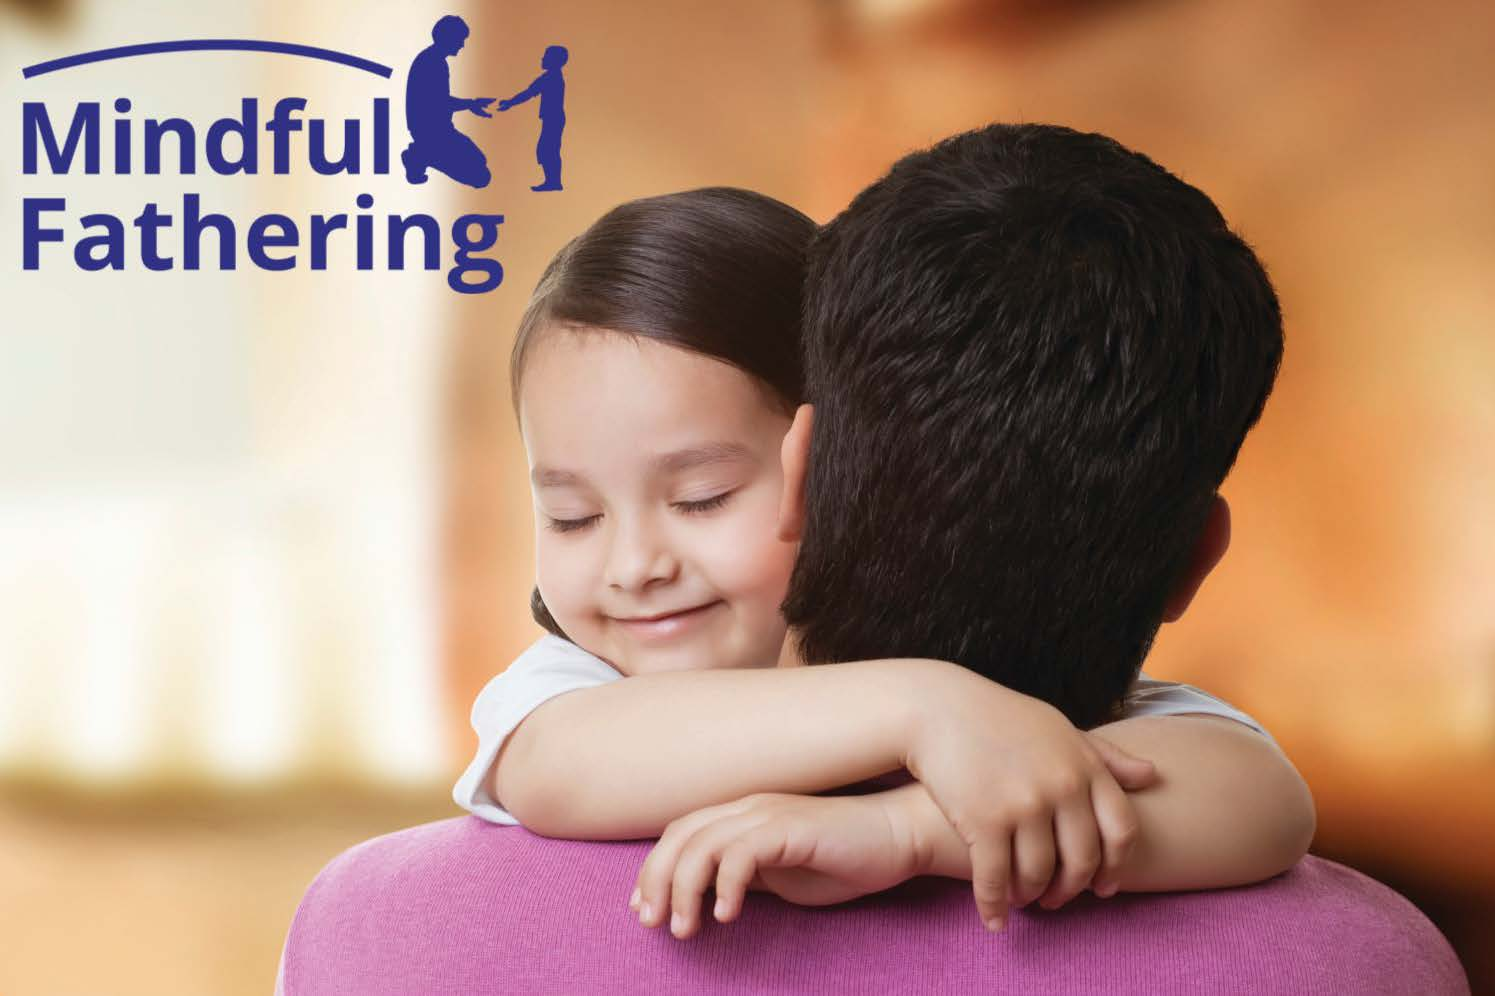 Picture of a little girl hugging her father and smiling with the Mindful Fathering logo